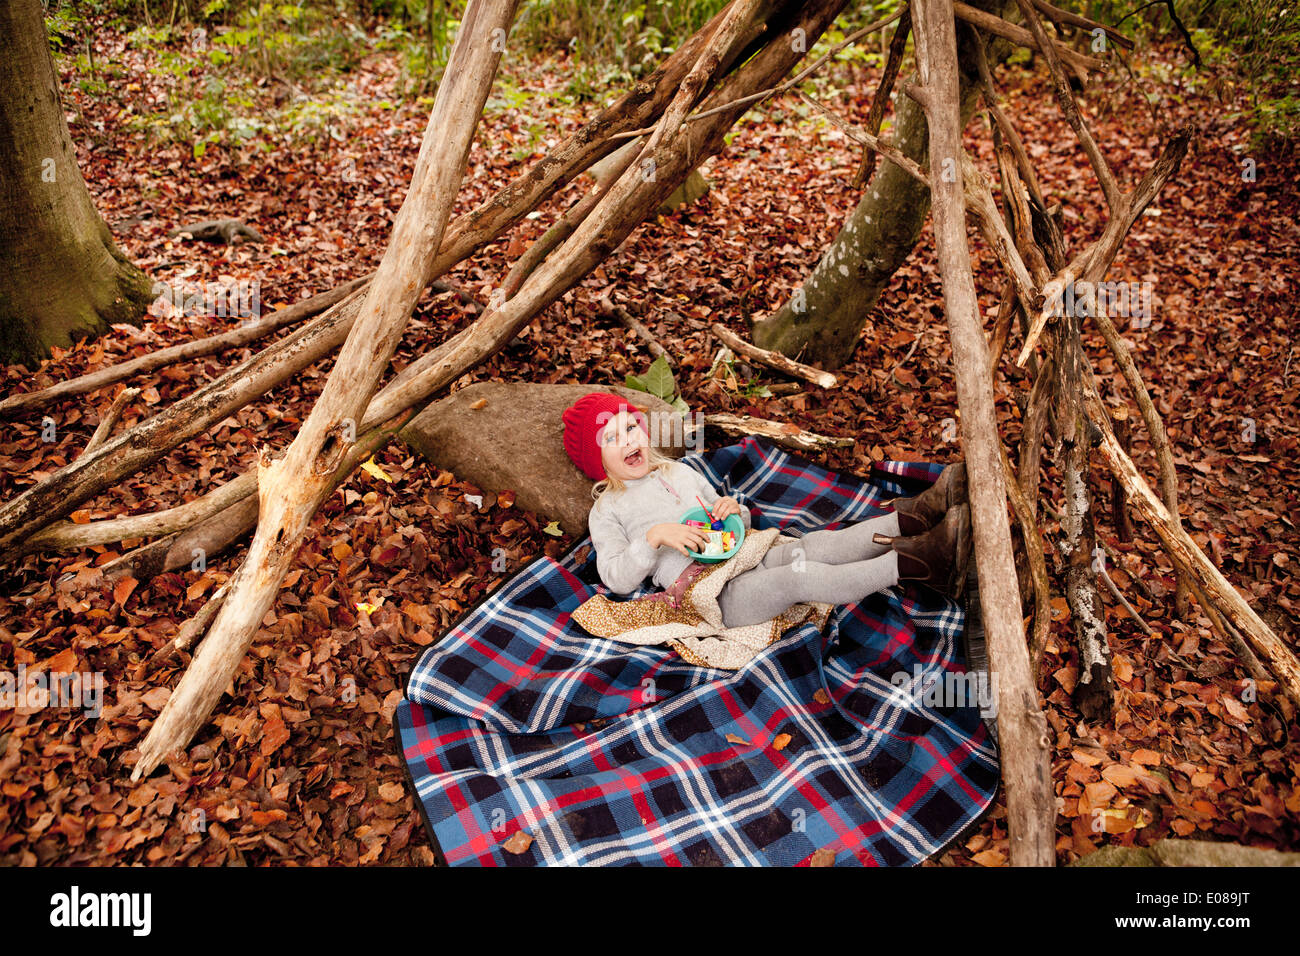 Portrait of Girl lying on picnic blanket in forest Photo Stock